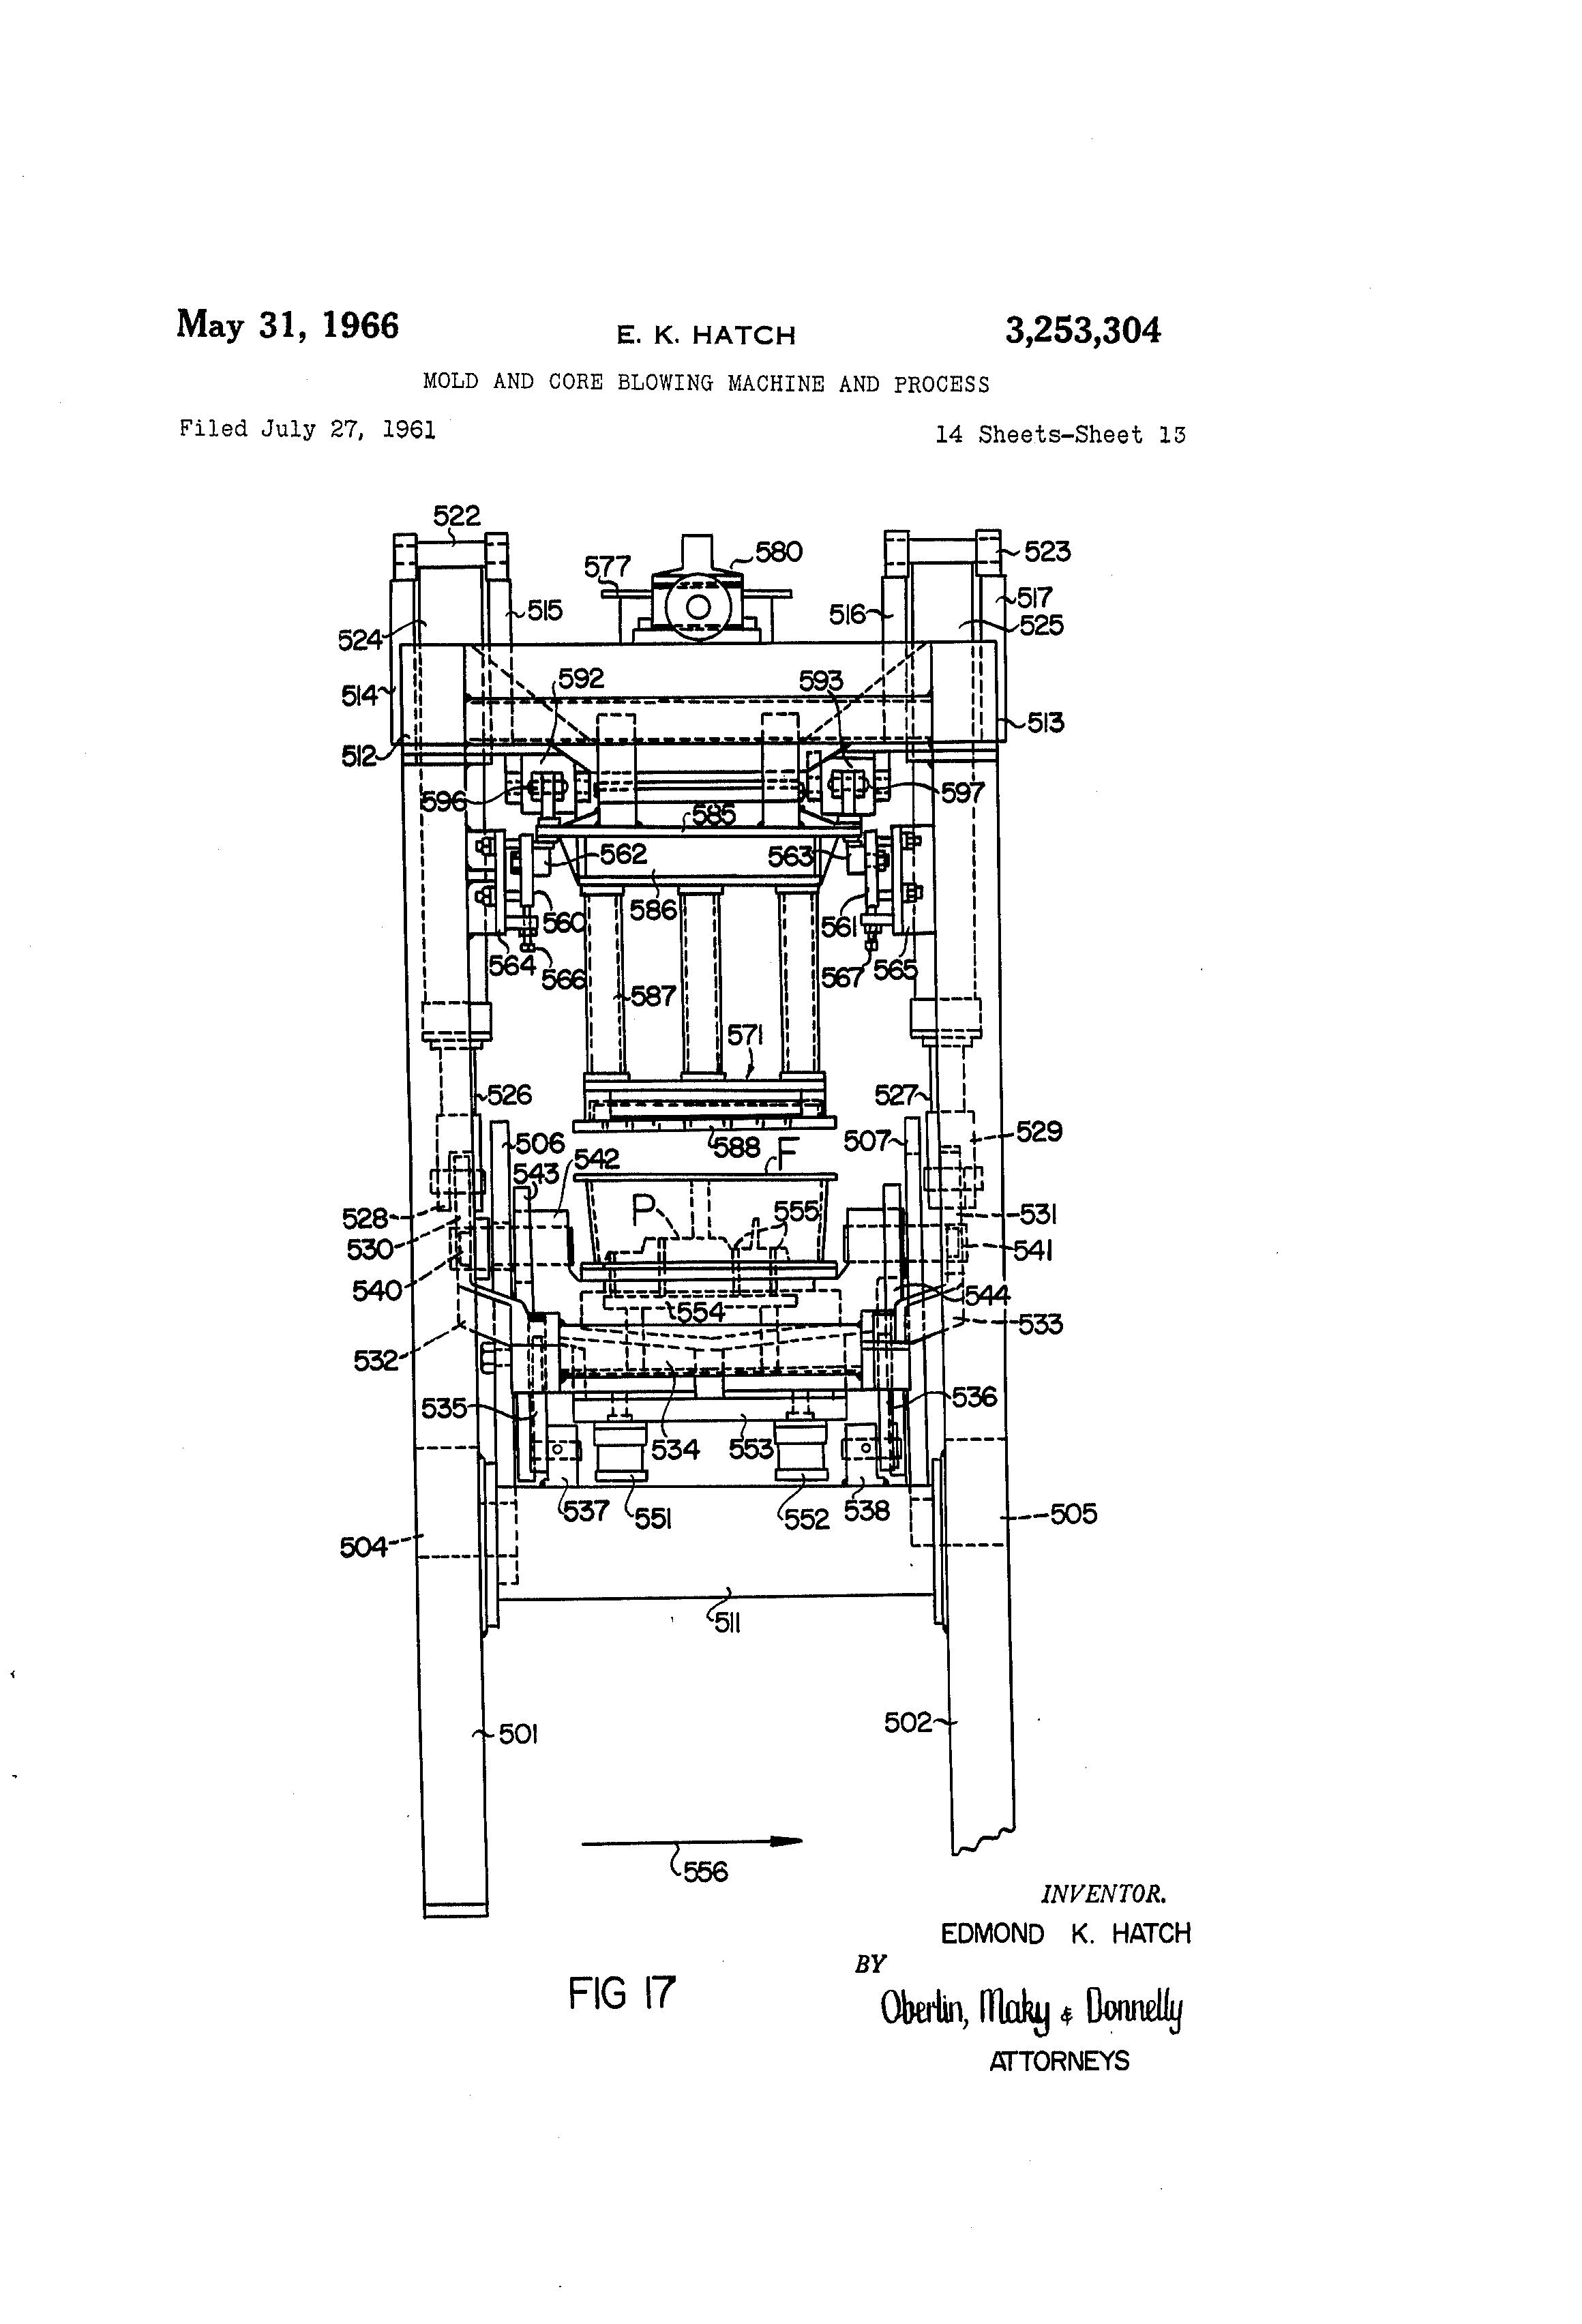 US3253304 12 patent us3253304 mold and core blowing machine and process  at reclaimingppi.co